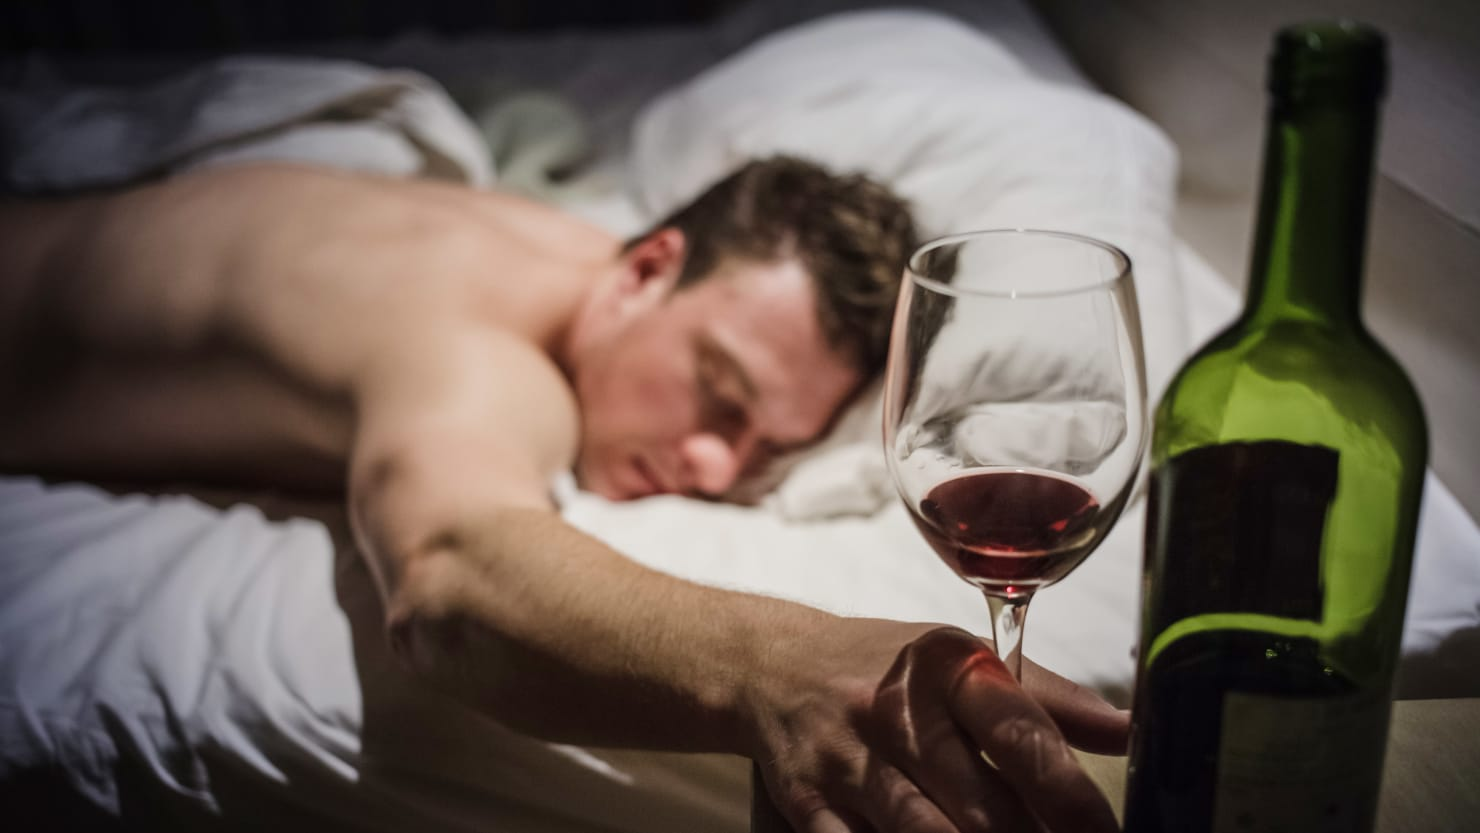 It turns out that drinking wine is actually stimulating for your brain